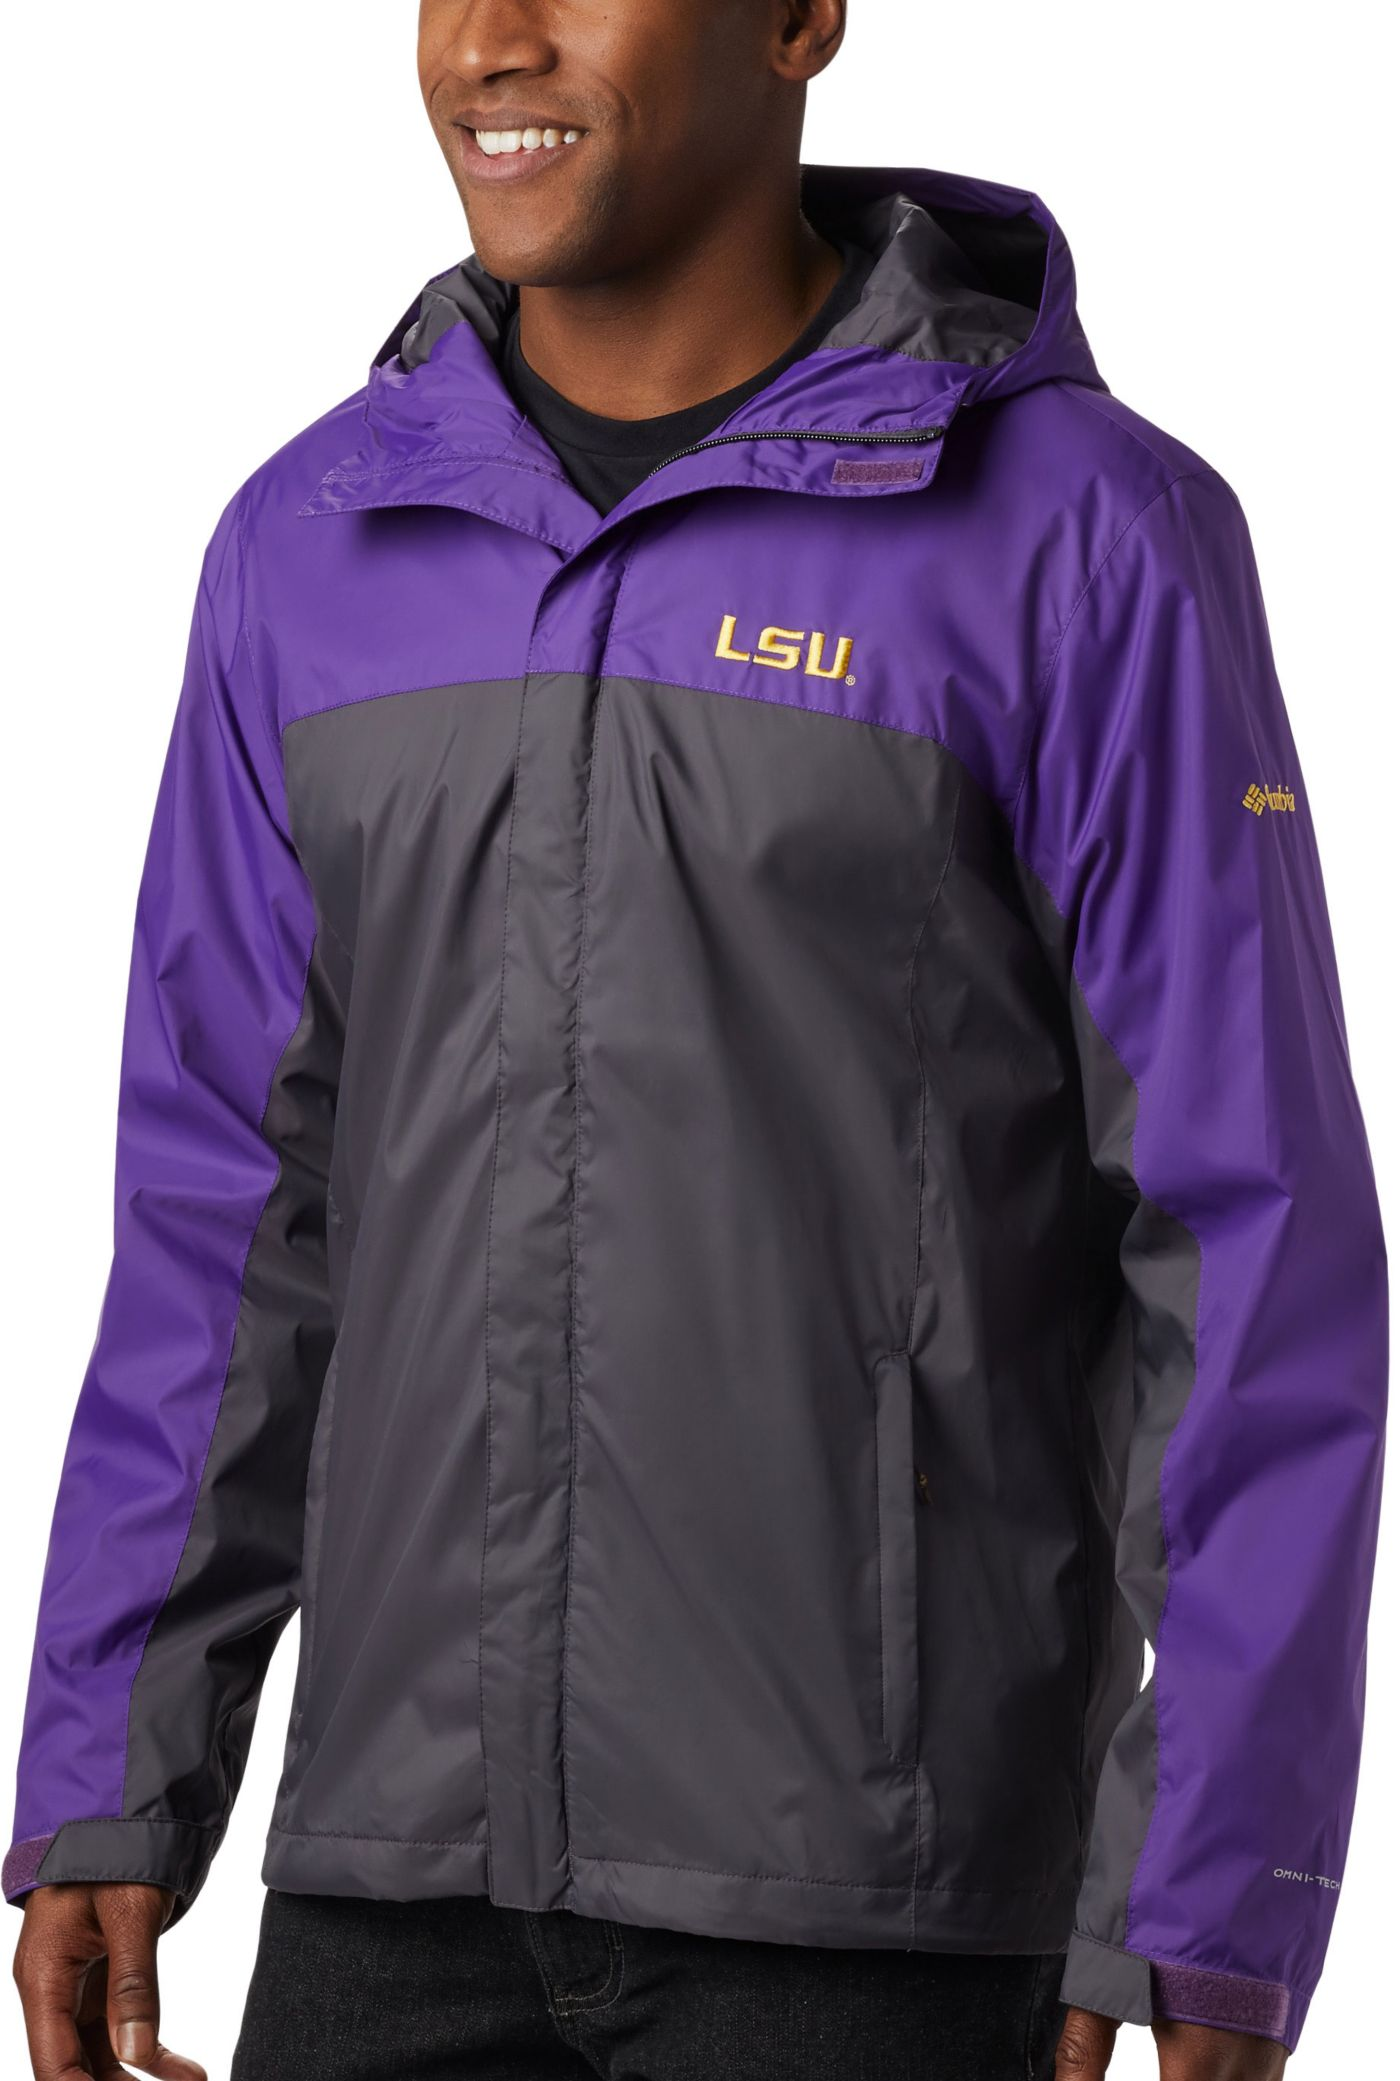 Columbia Men's LSU Tigers Purple/Grey Glennaker Storm Jacket